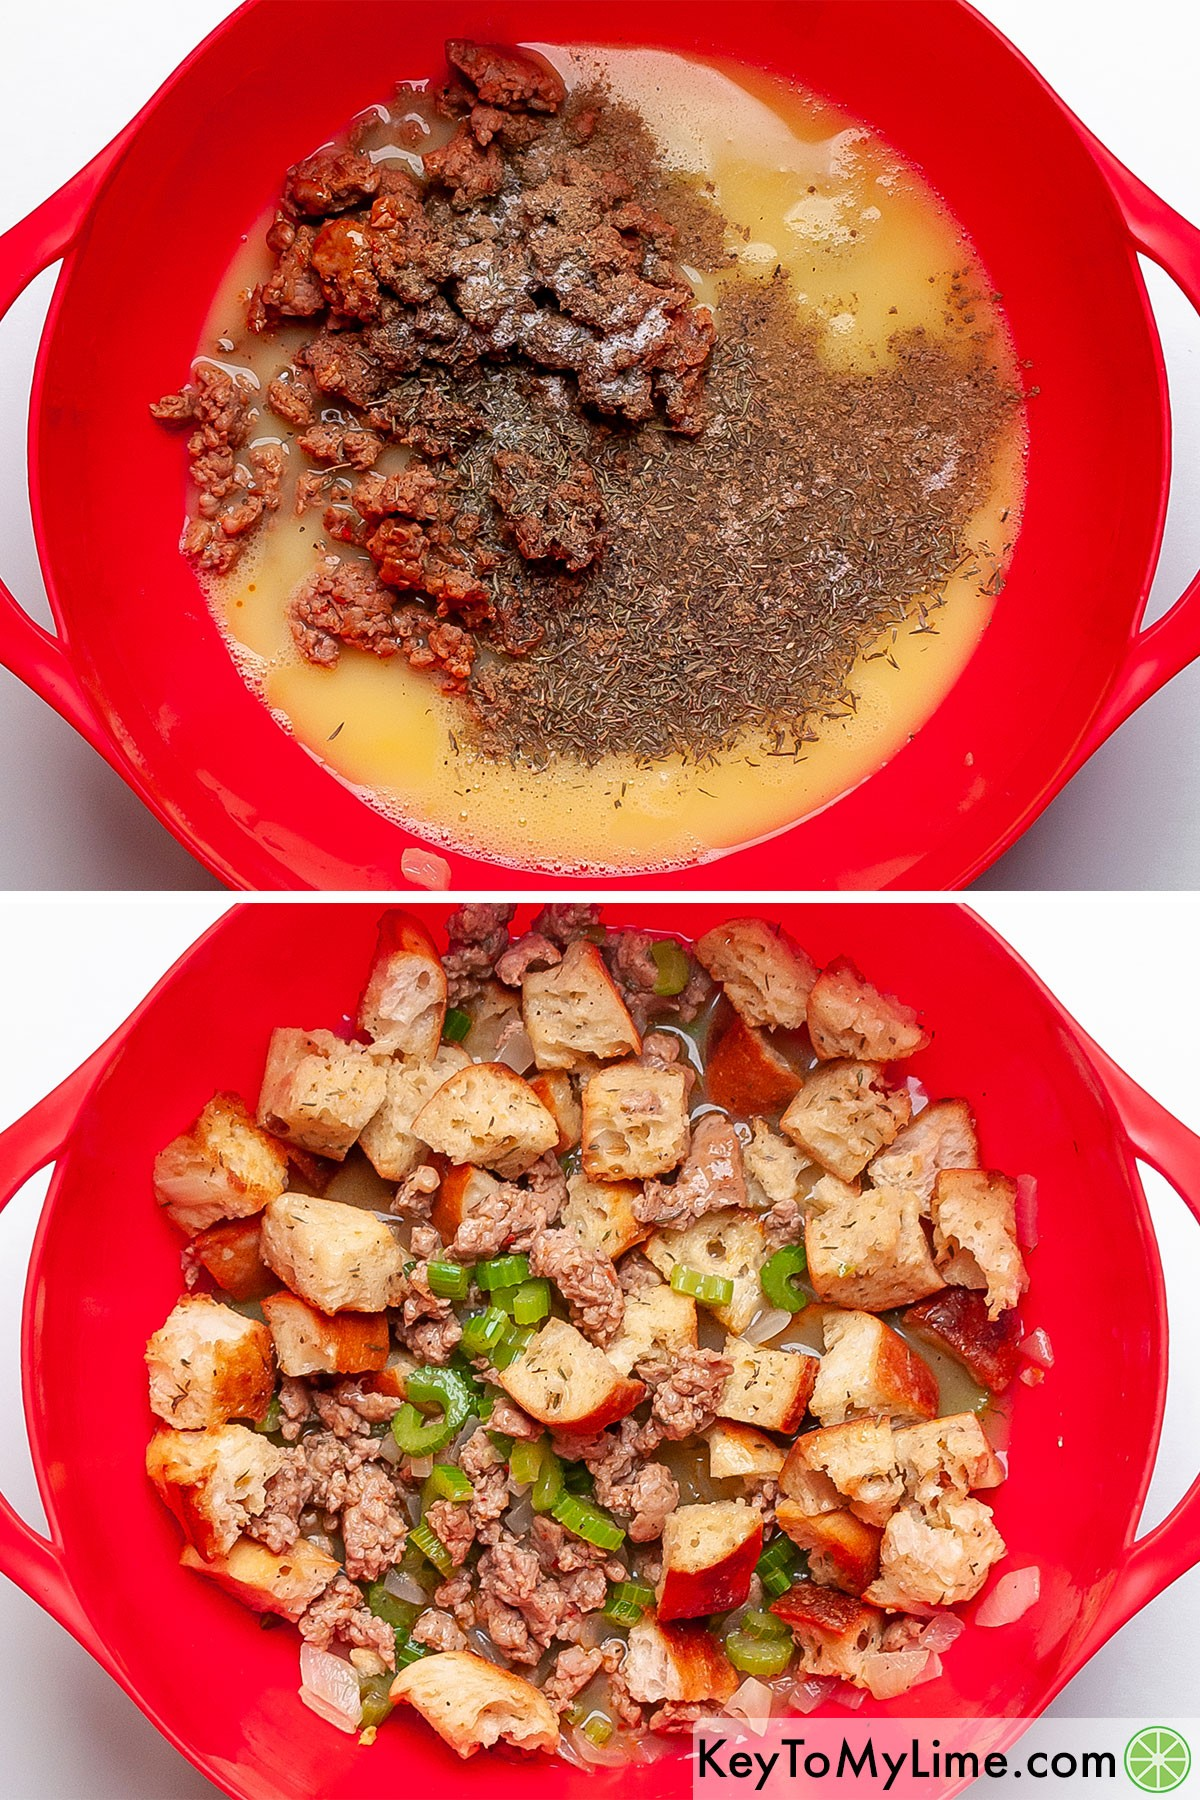 A process collage showing mixing together the ingredients for cornbread dressing.